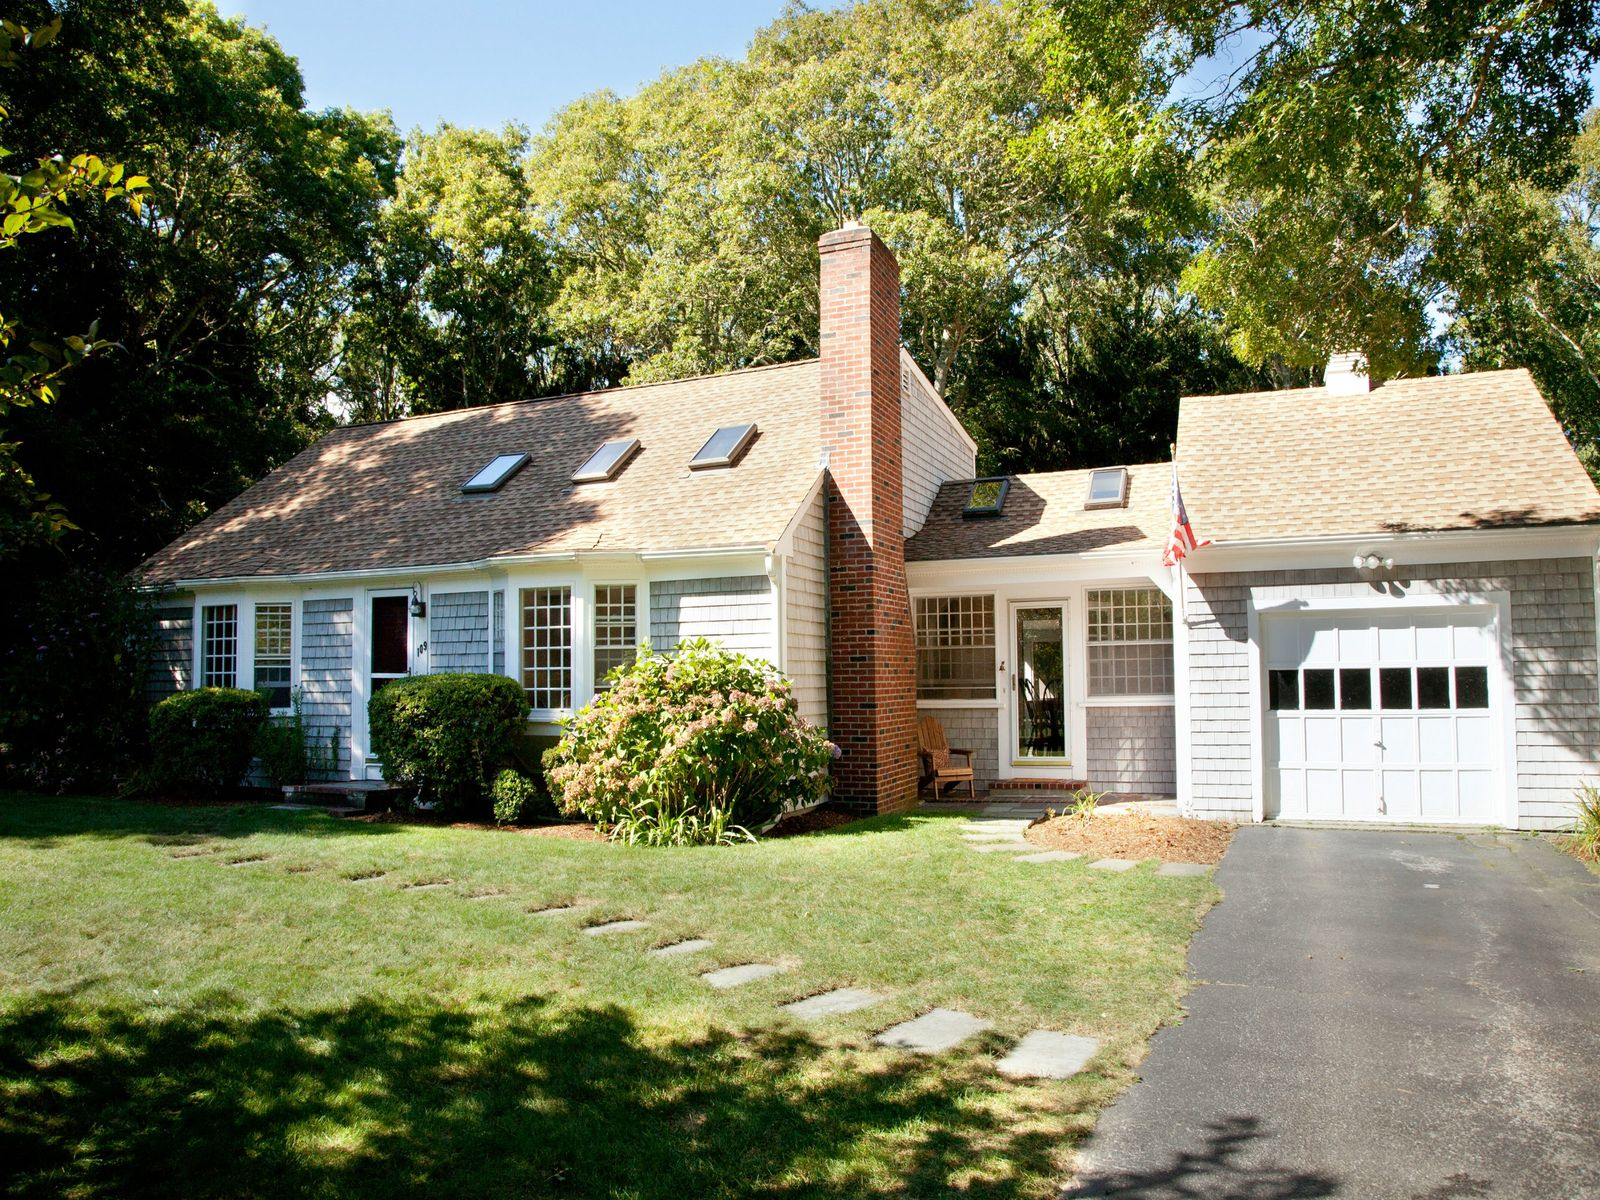 Private Cape with Porch, Osterville MA Single Family Home - Cape Cod Real Estate